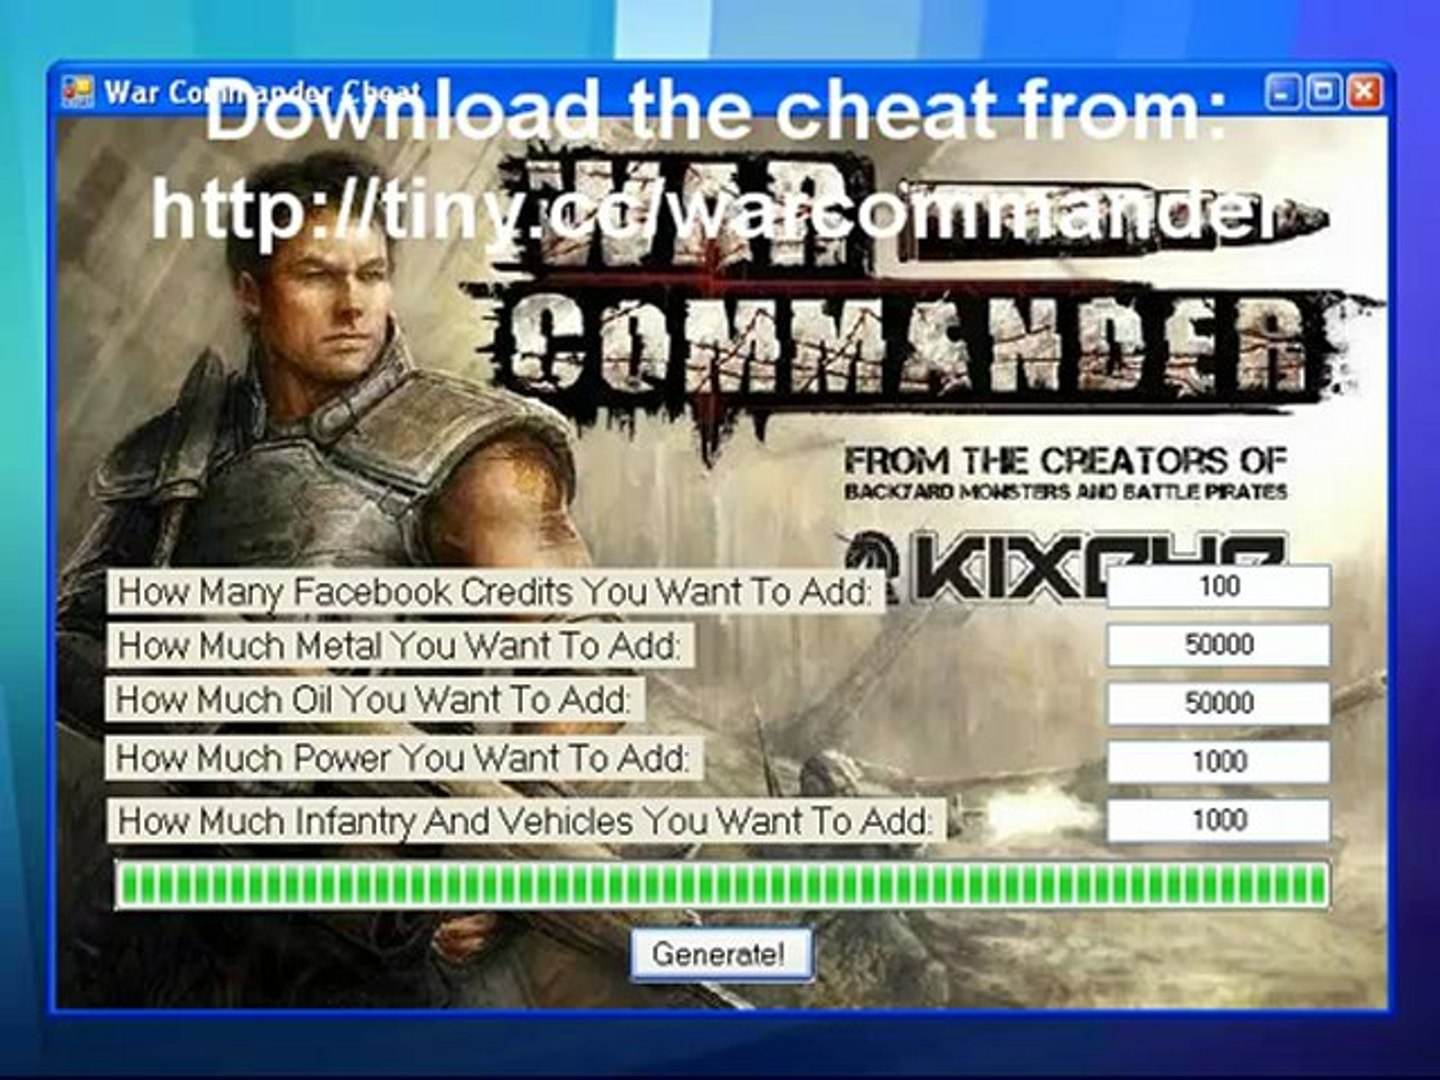 War Commander Cheat [War Commander Hack]